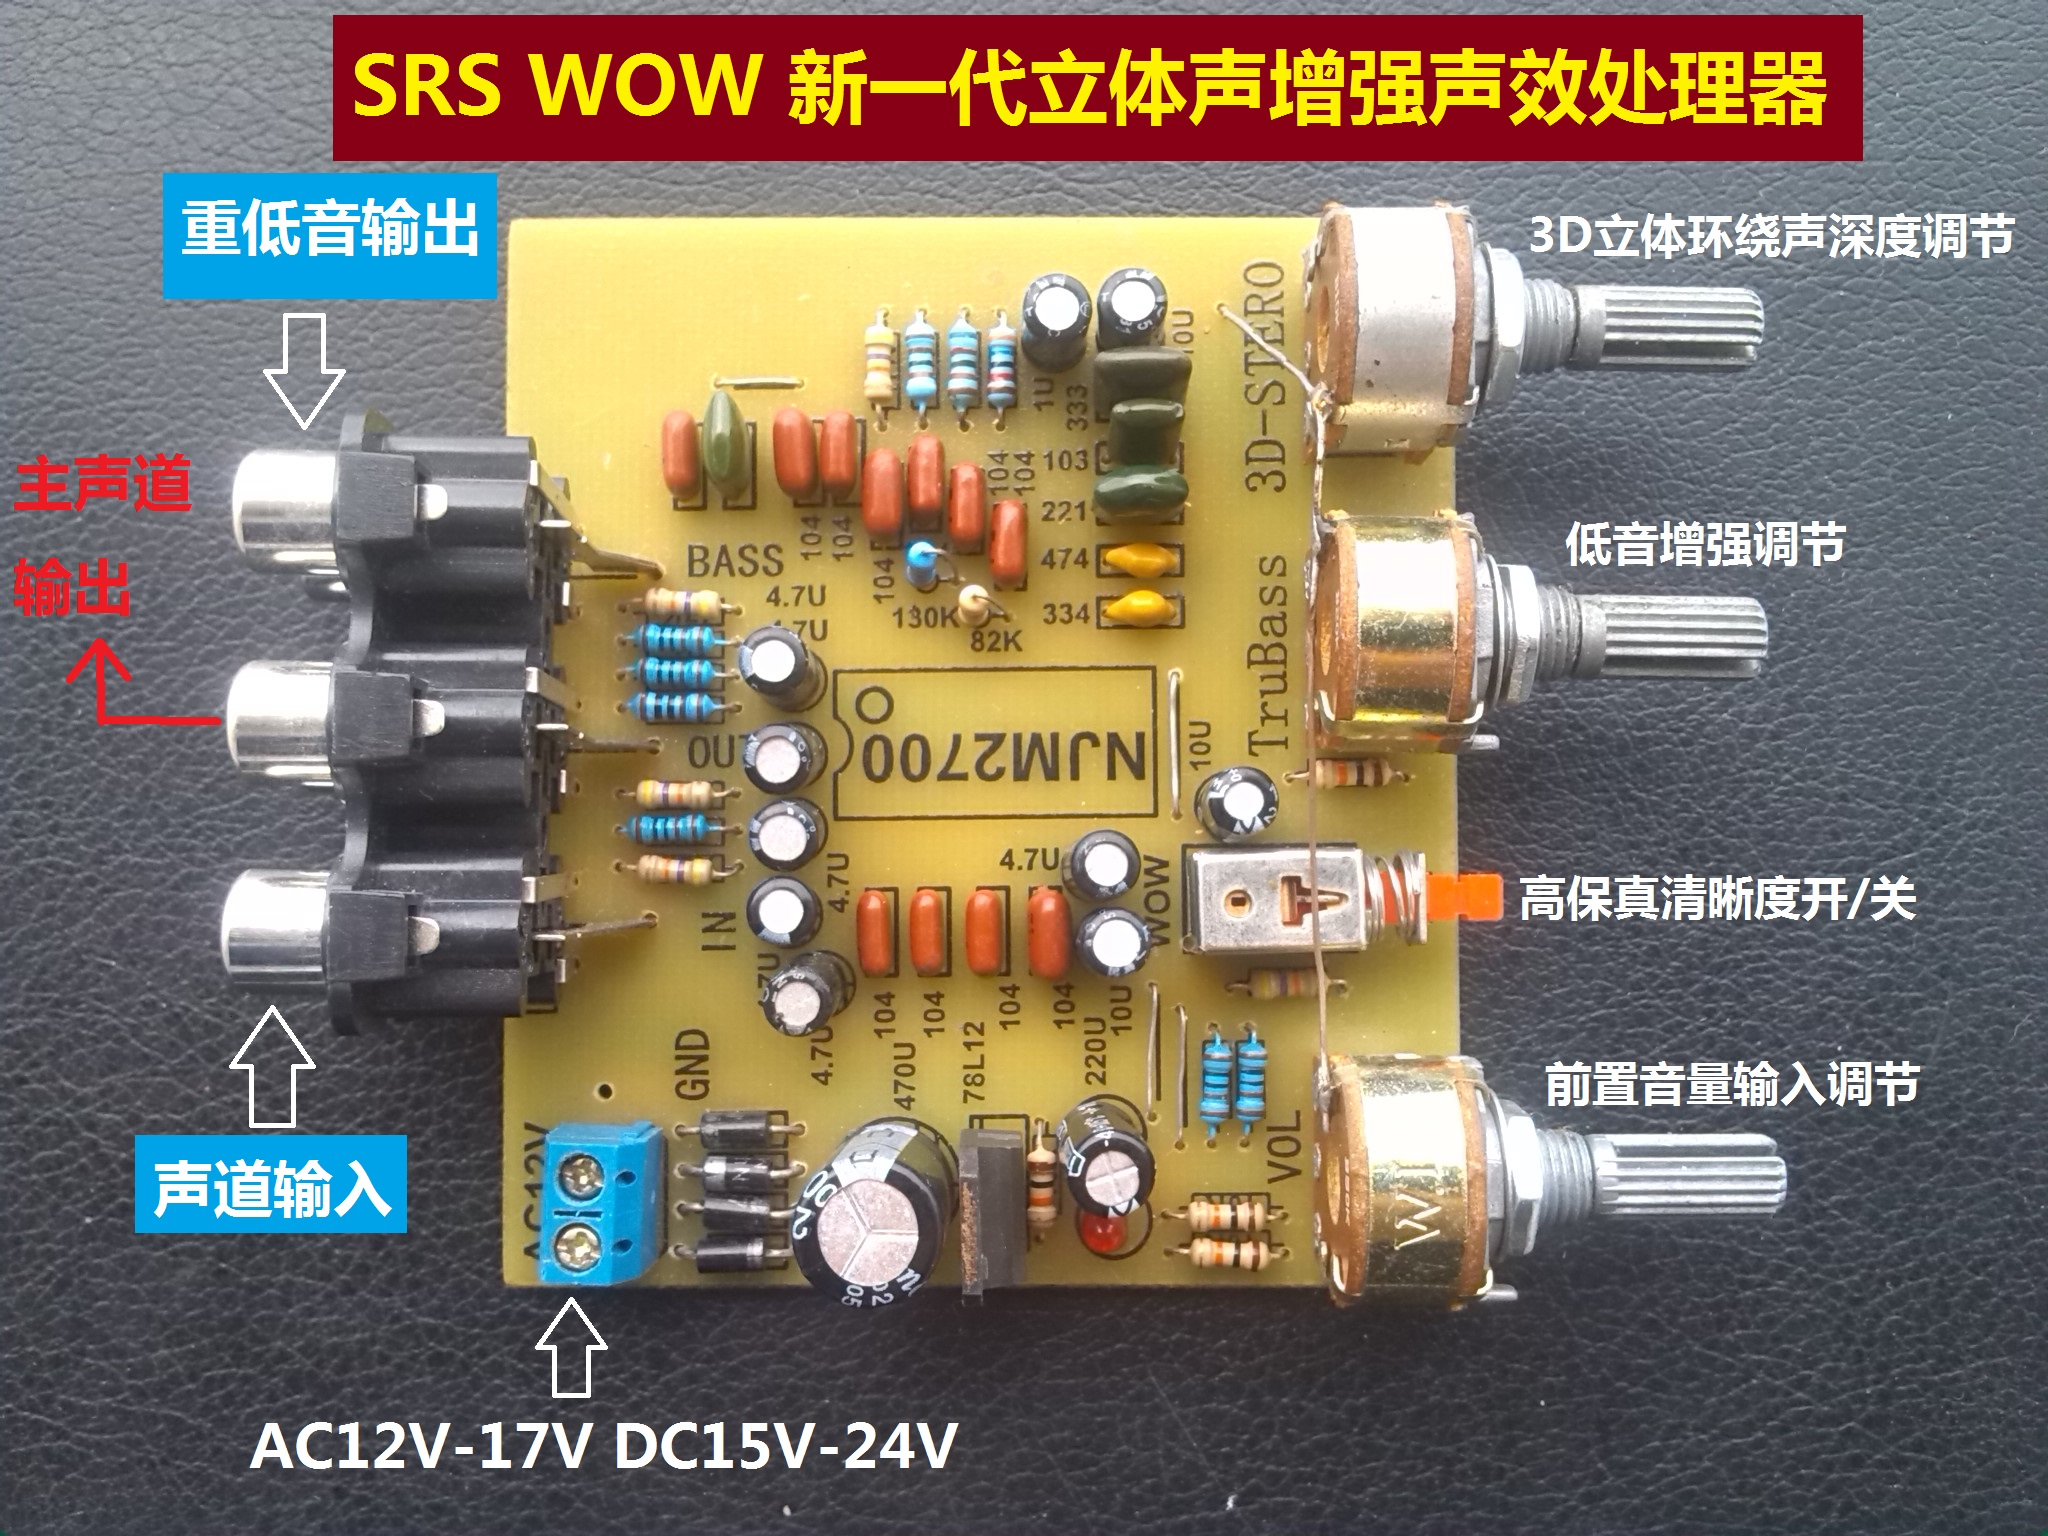 WOW 3DSRS next generation stereo enhancement system audiophile sound  processor sound upgrade board